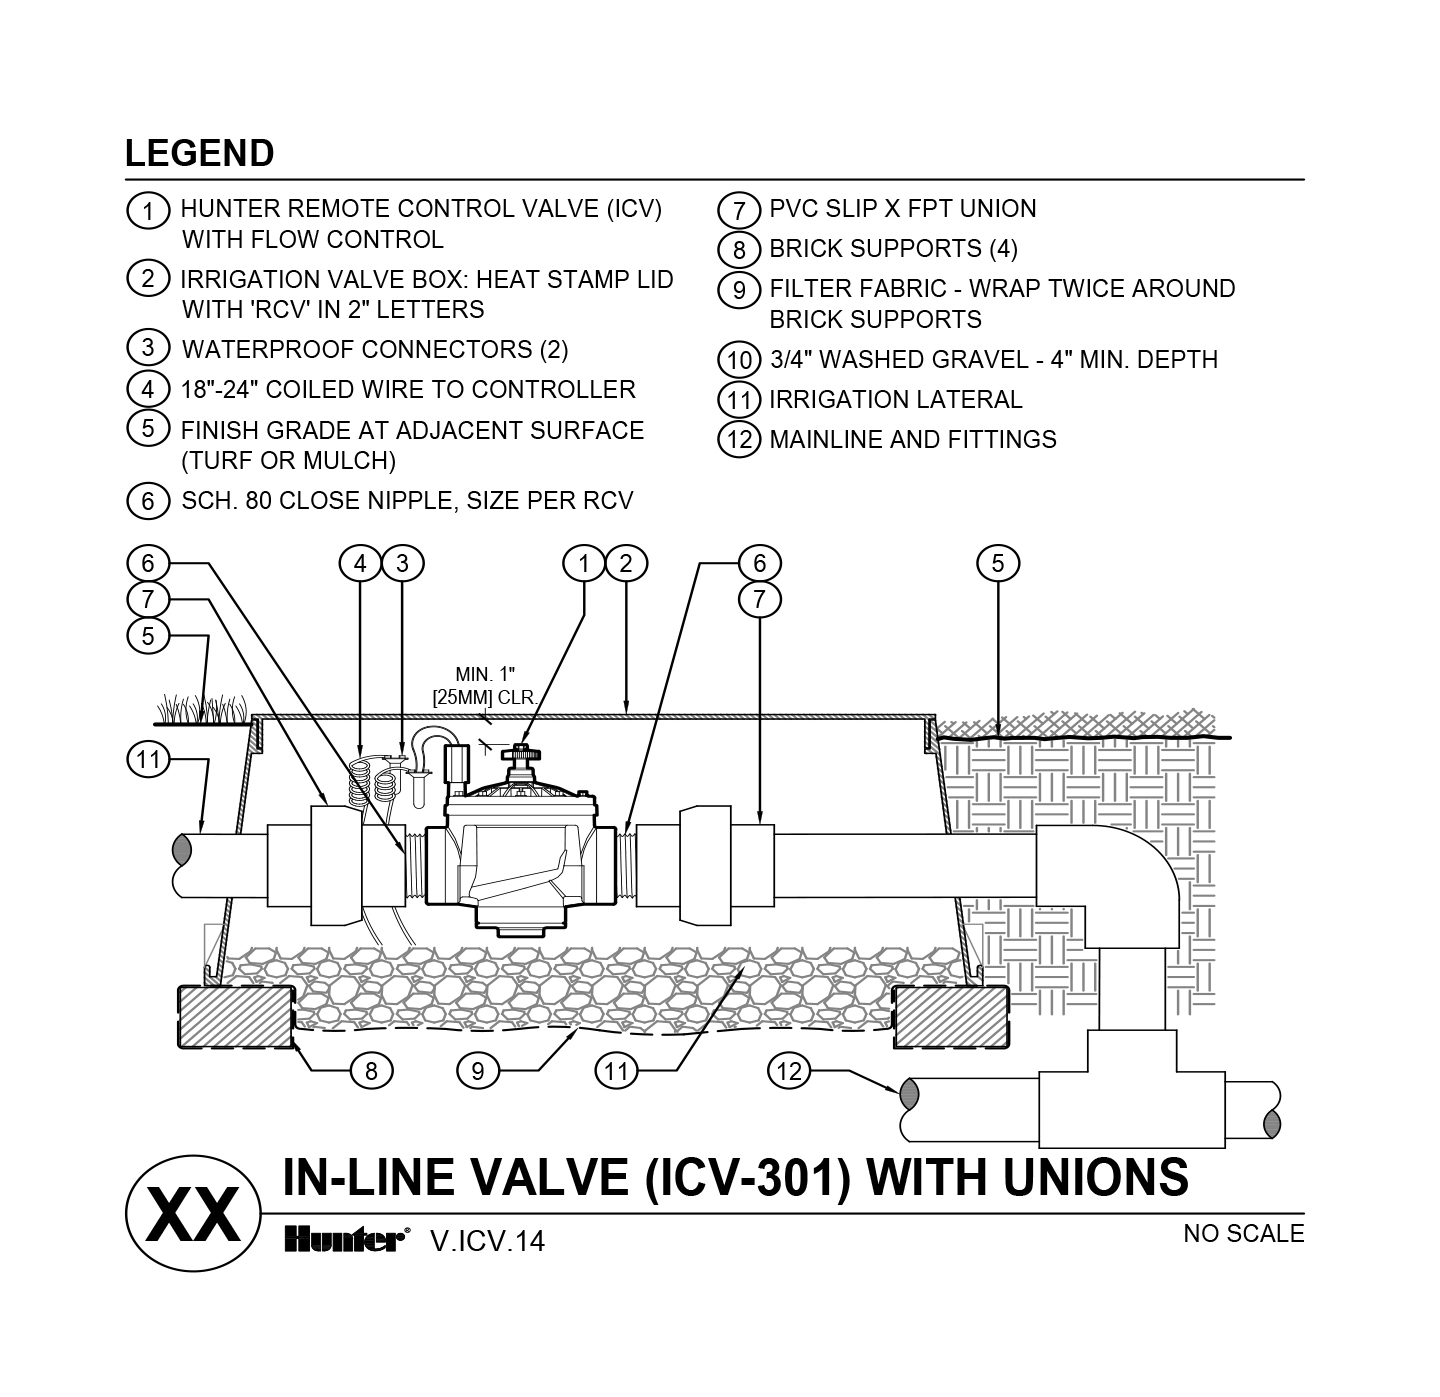 CAD - ICV-301G with unions